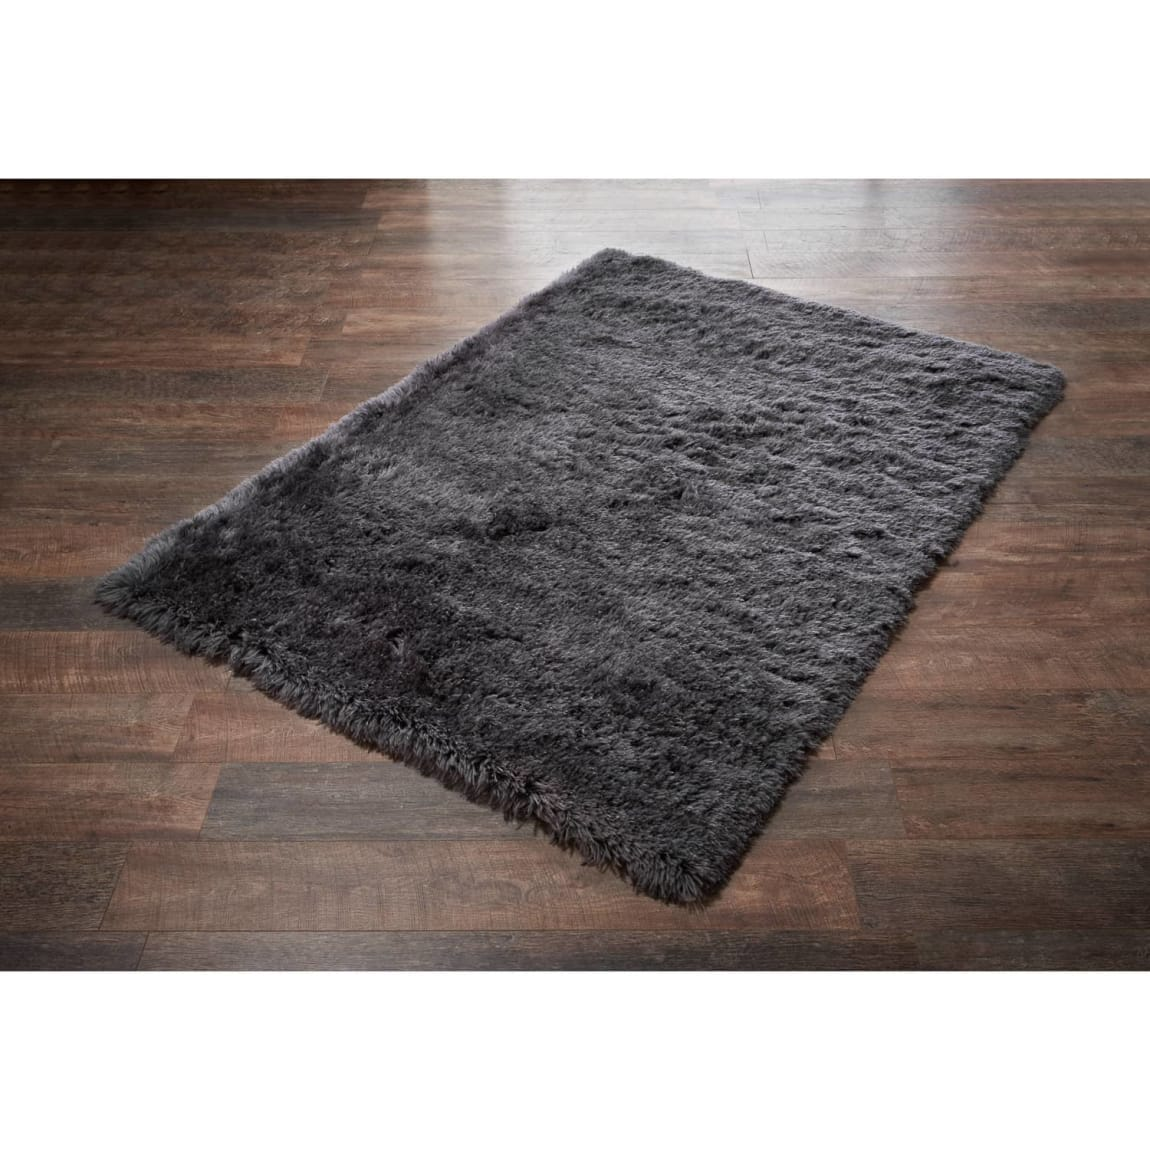 Charcoal Ostrich Rug - 110 x 160cm